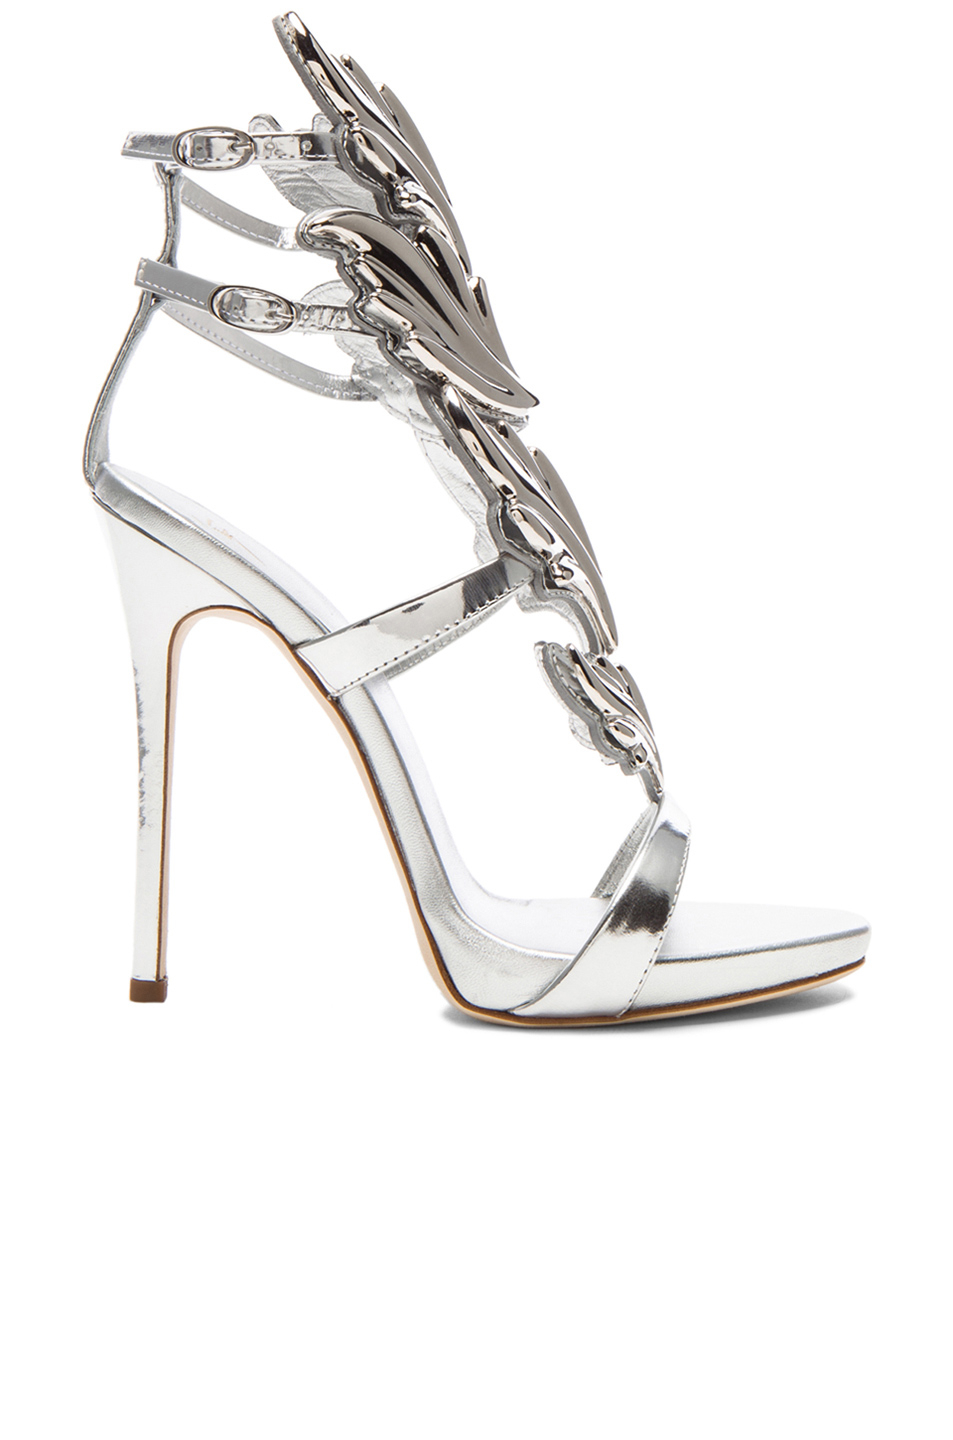 Giuseppe zanotti X Kayne West Wing Patent Leather Heels in